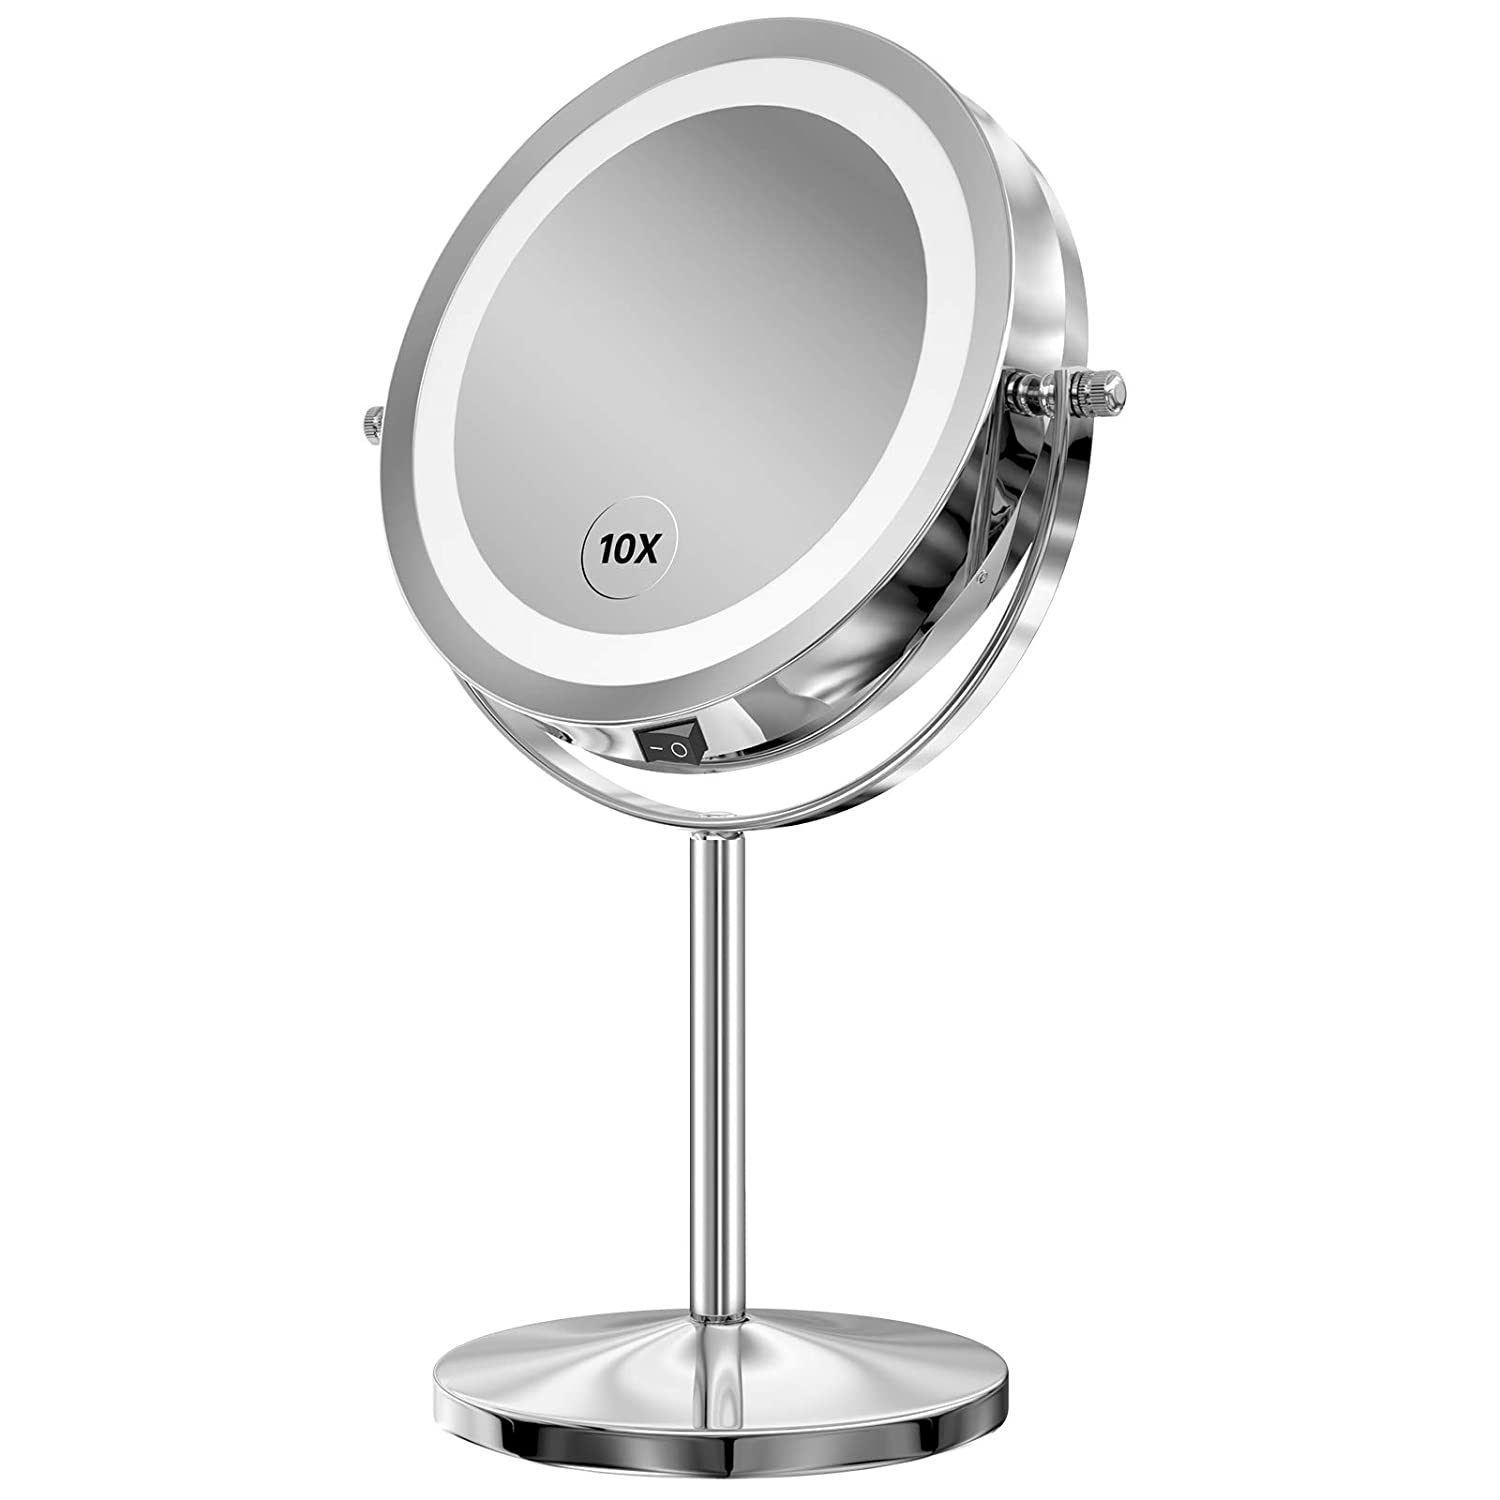 Lighted Makeup Mirror 7 Inch Led Vanity Swivel Mirror 1x 10x Magnifying Double Sided Mirror With Stand Battery Operated Beauty